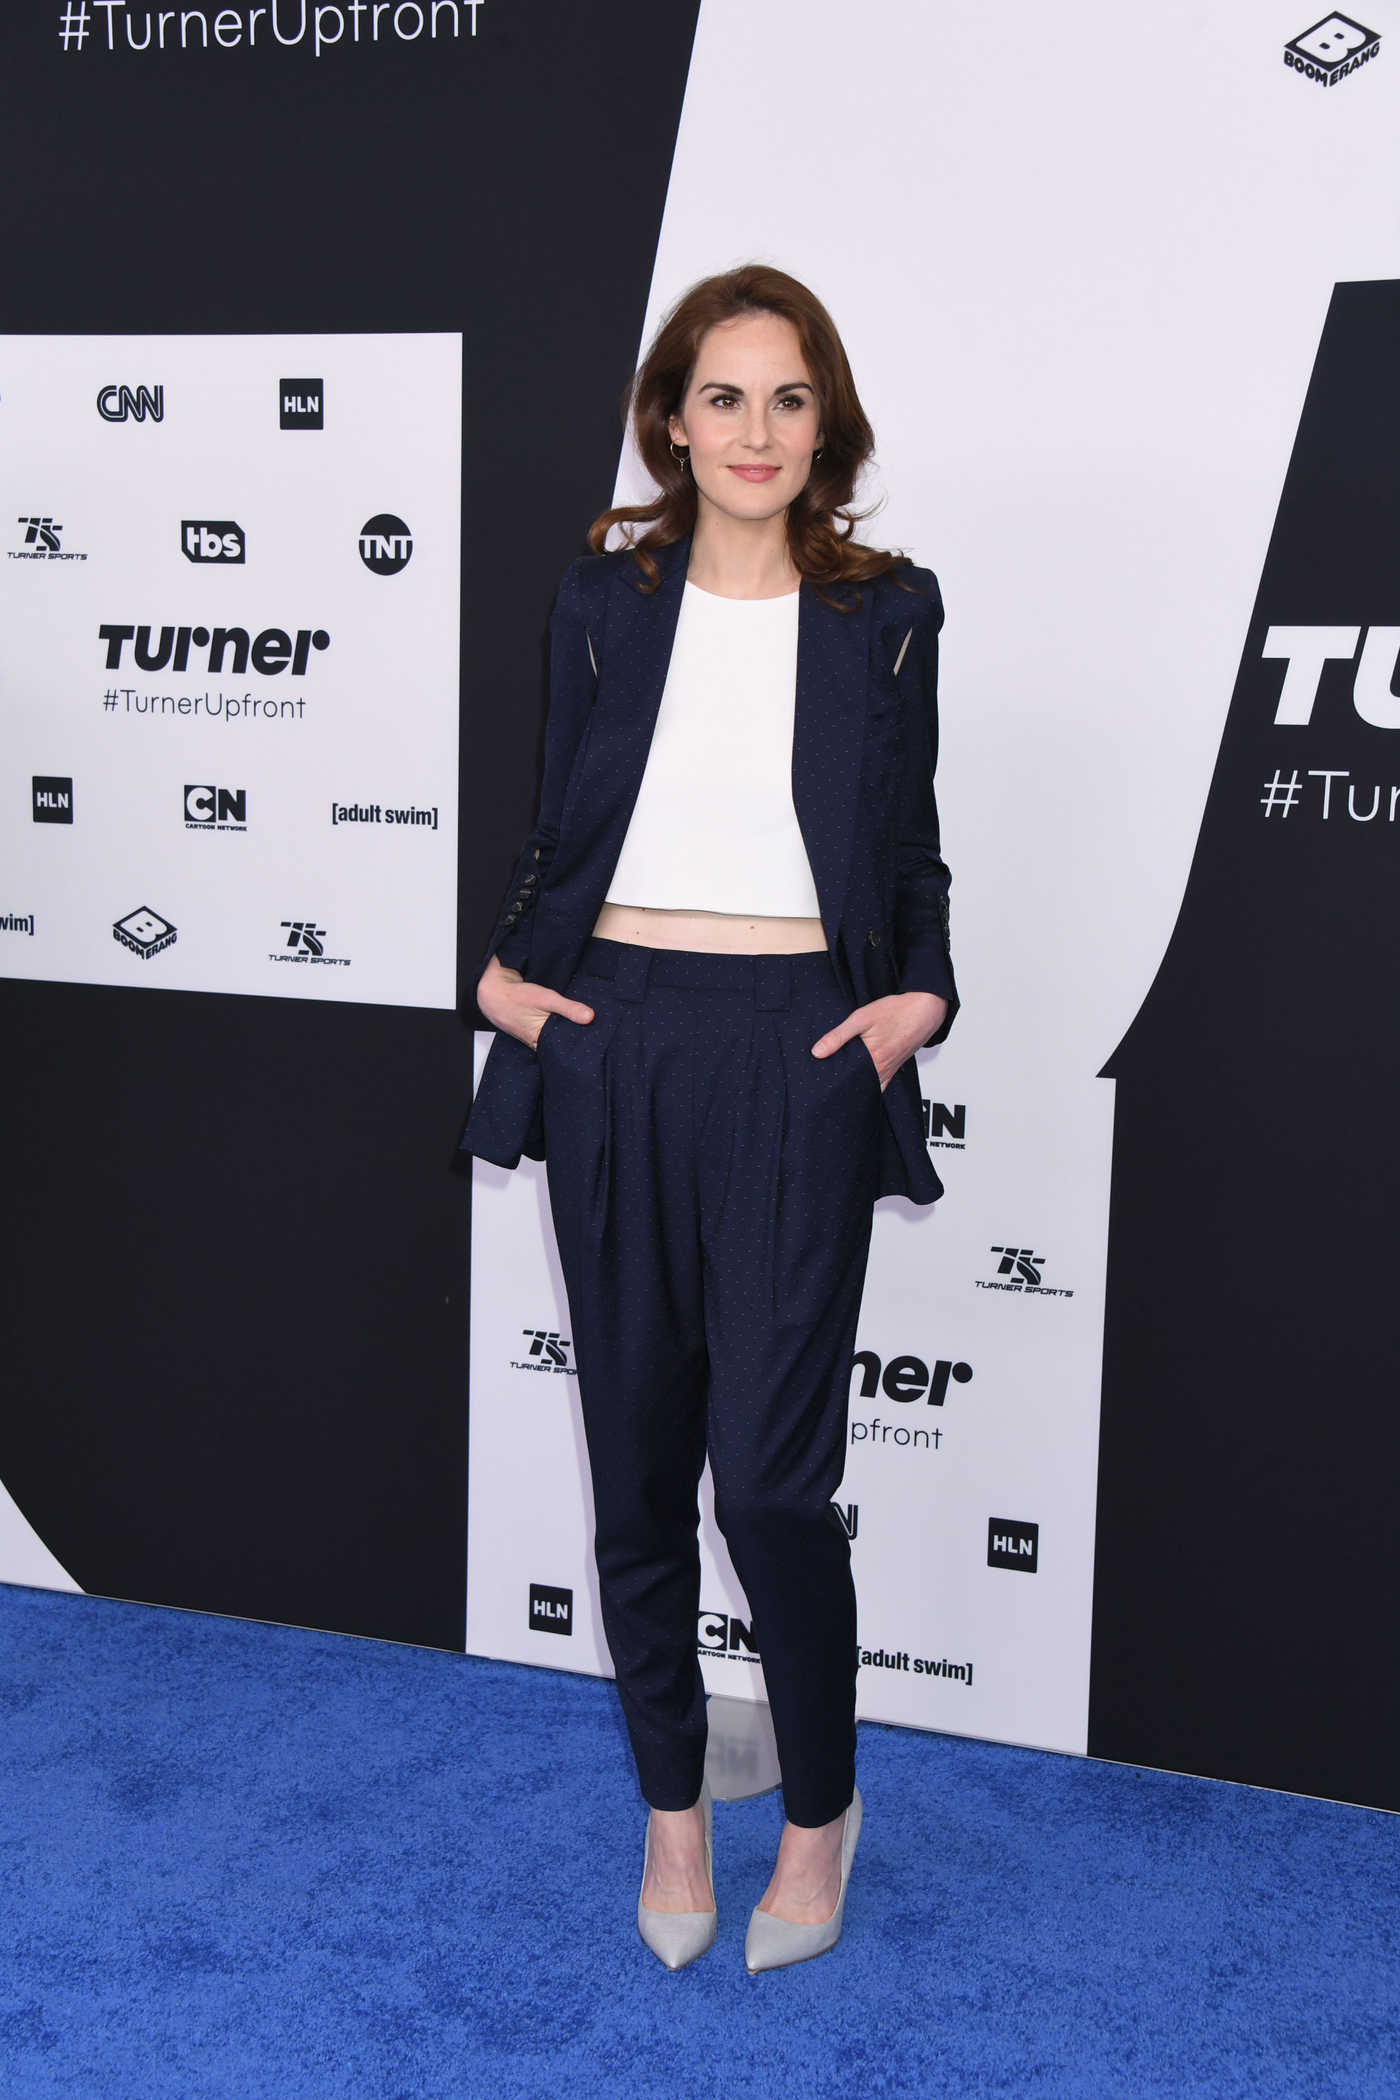 Michelle Dockery at the Turner Upfront Presentation in New York 05/17/2017